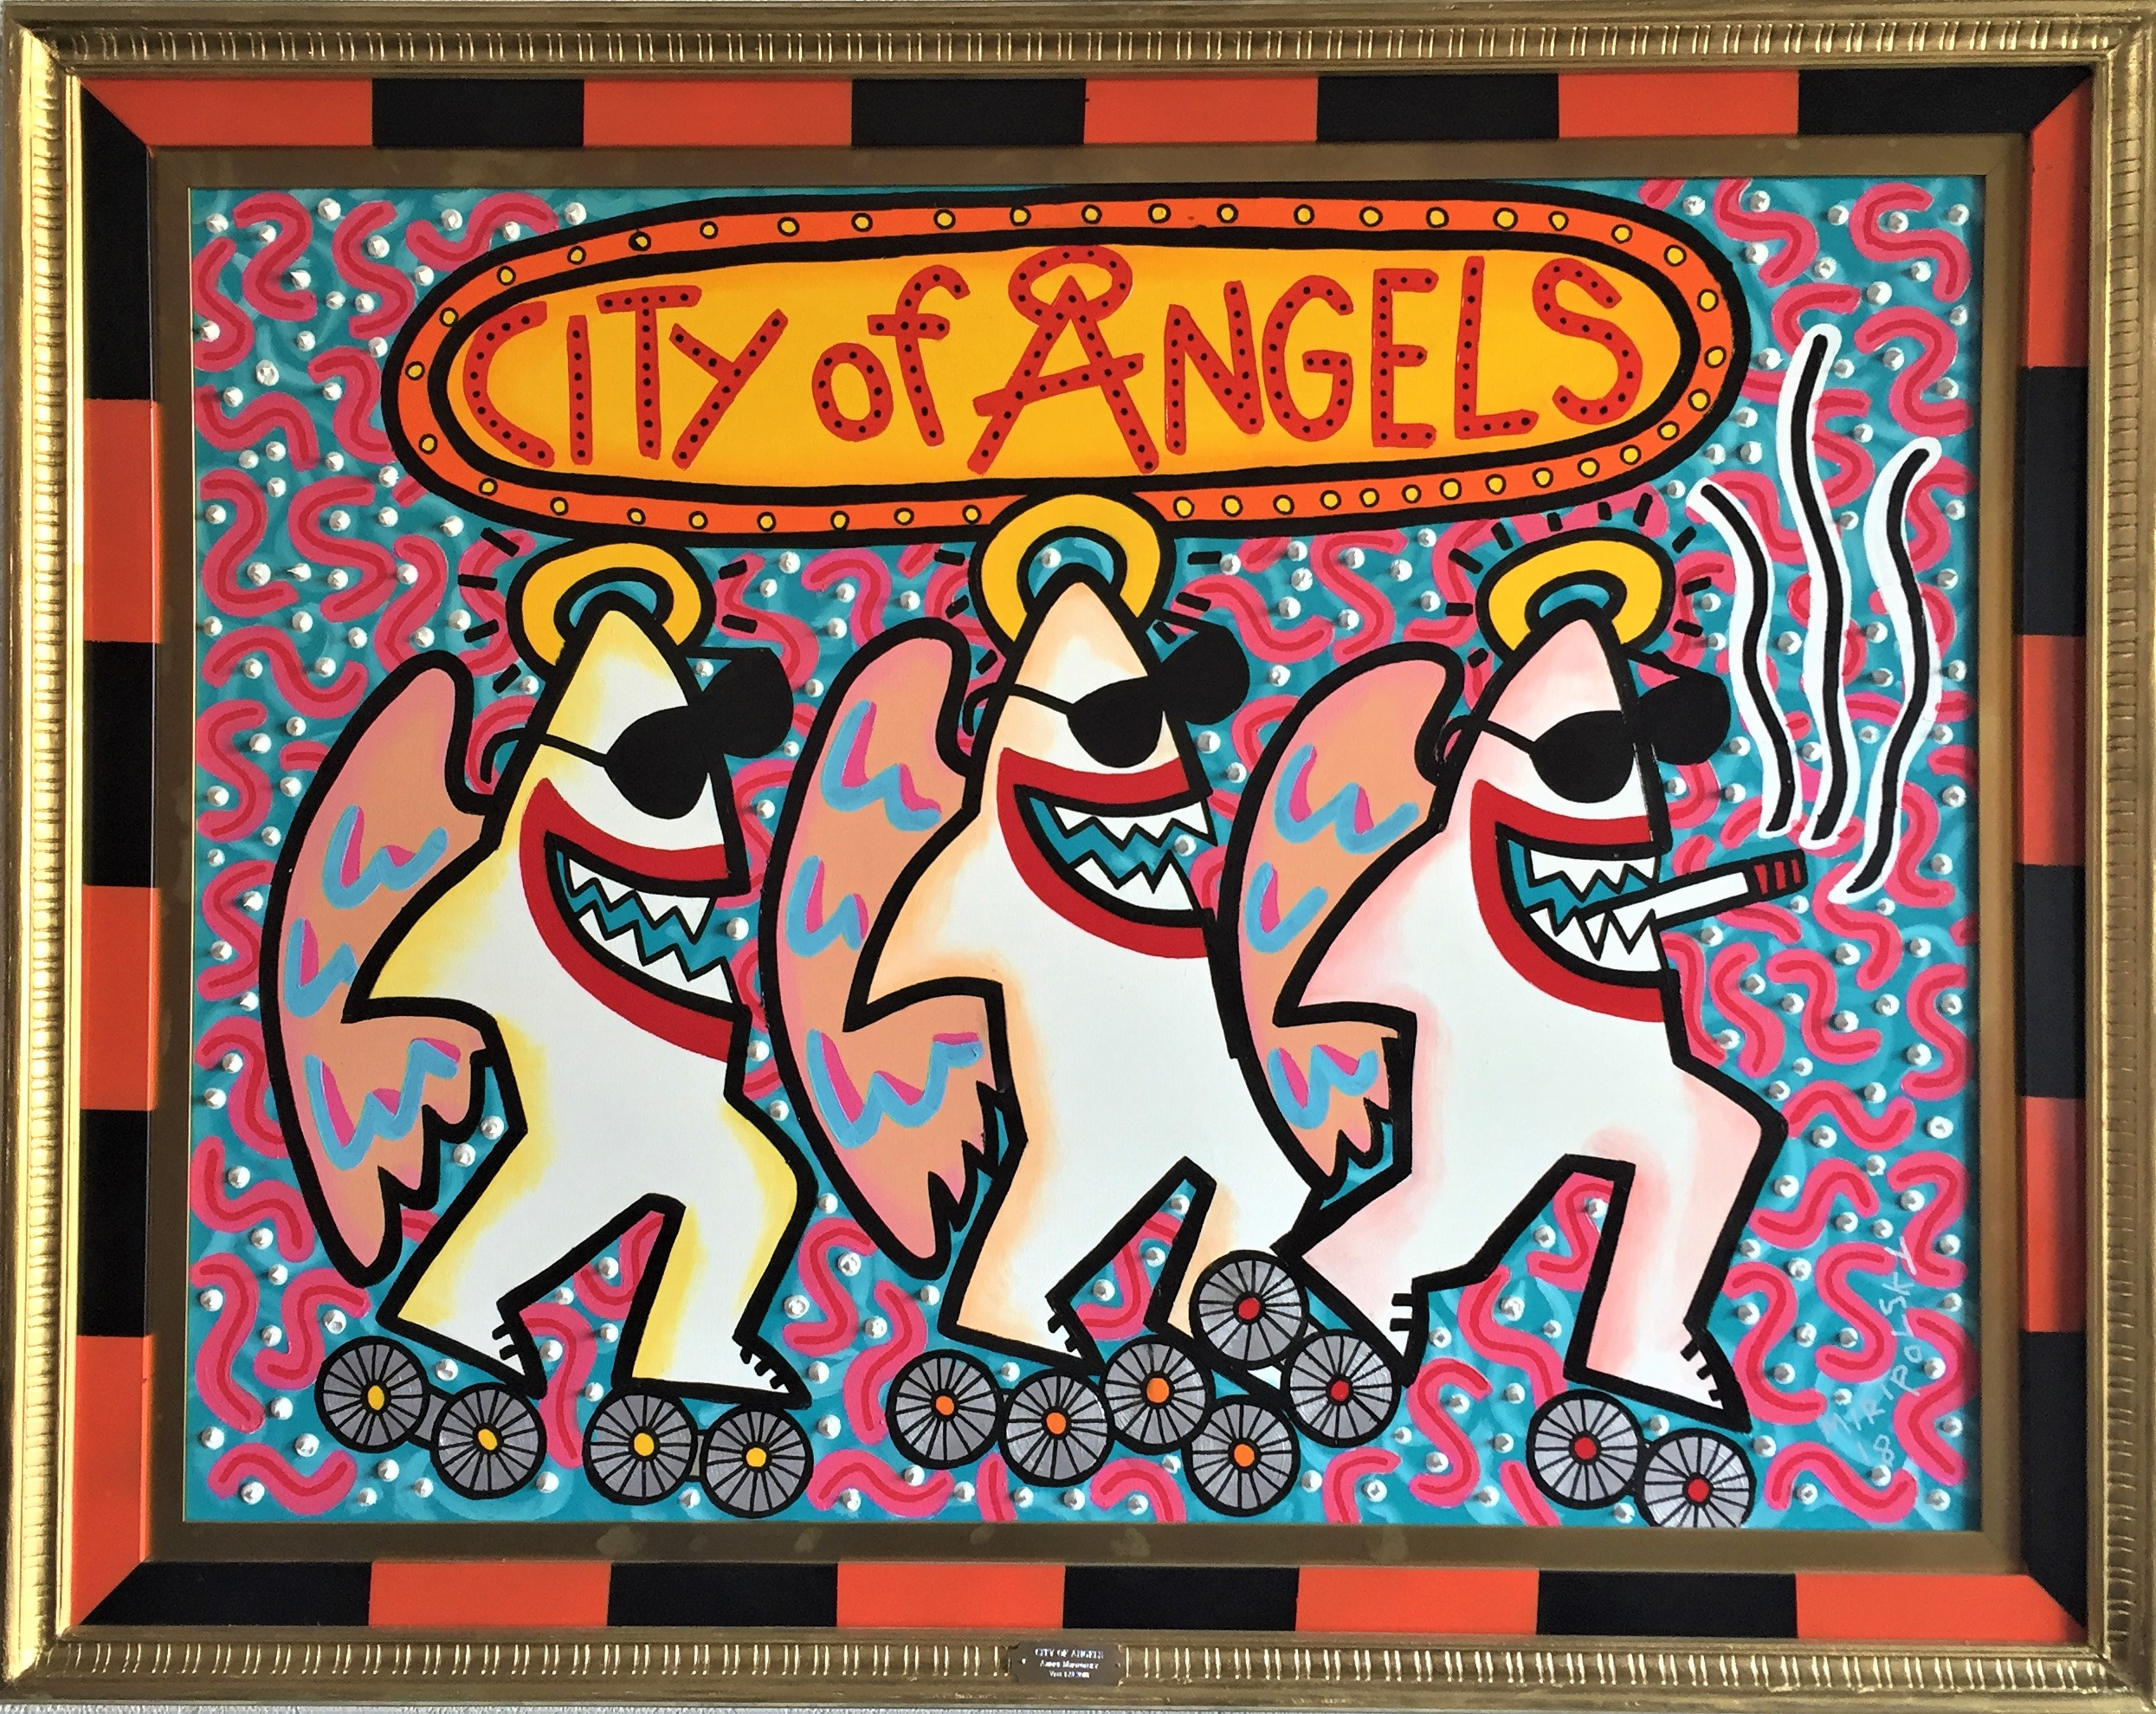 MIRIPOLSKY_PAINTING_CITY OF ANGELS_45X57.jpg